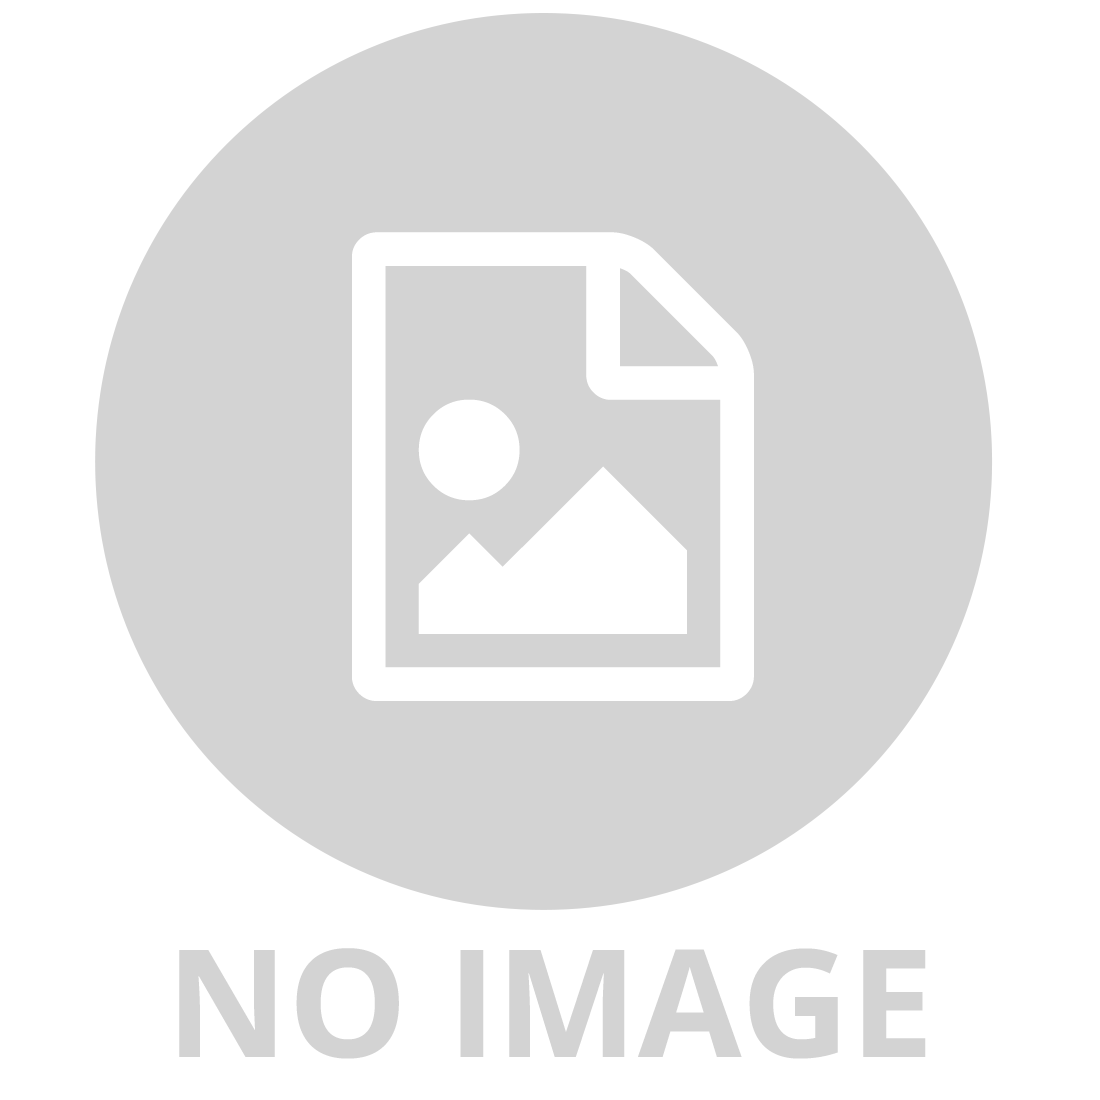 THOMAS & fRIENDS TRACK MASTER - GATOR